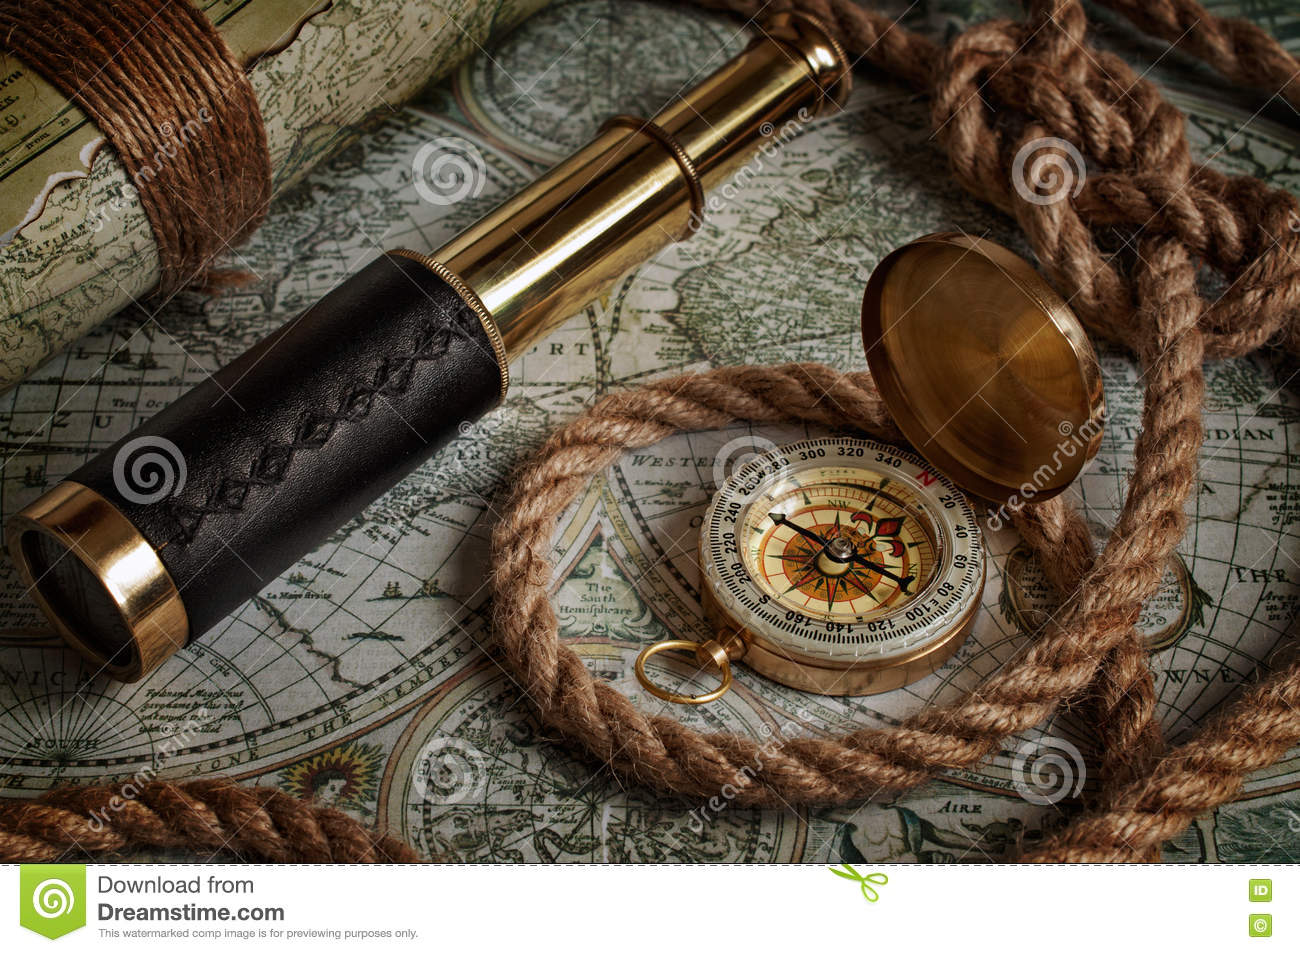 Antique Nautical Navigation Tools Stock Photo | Getty Images